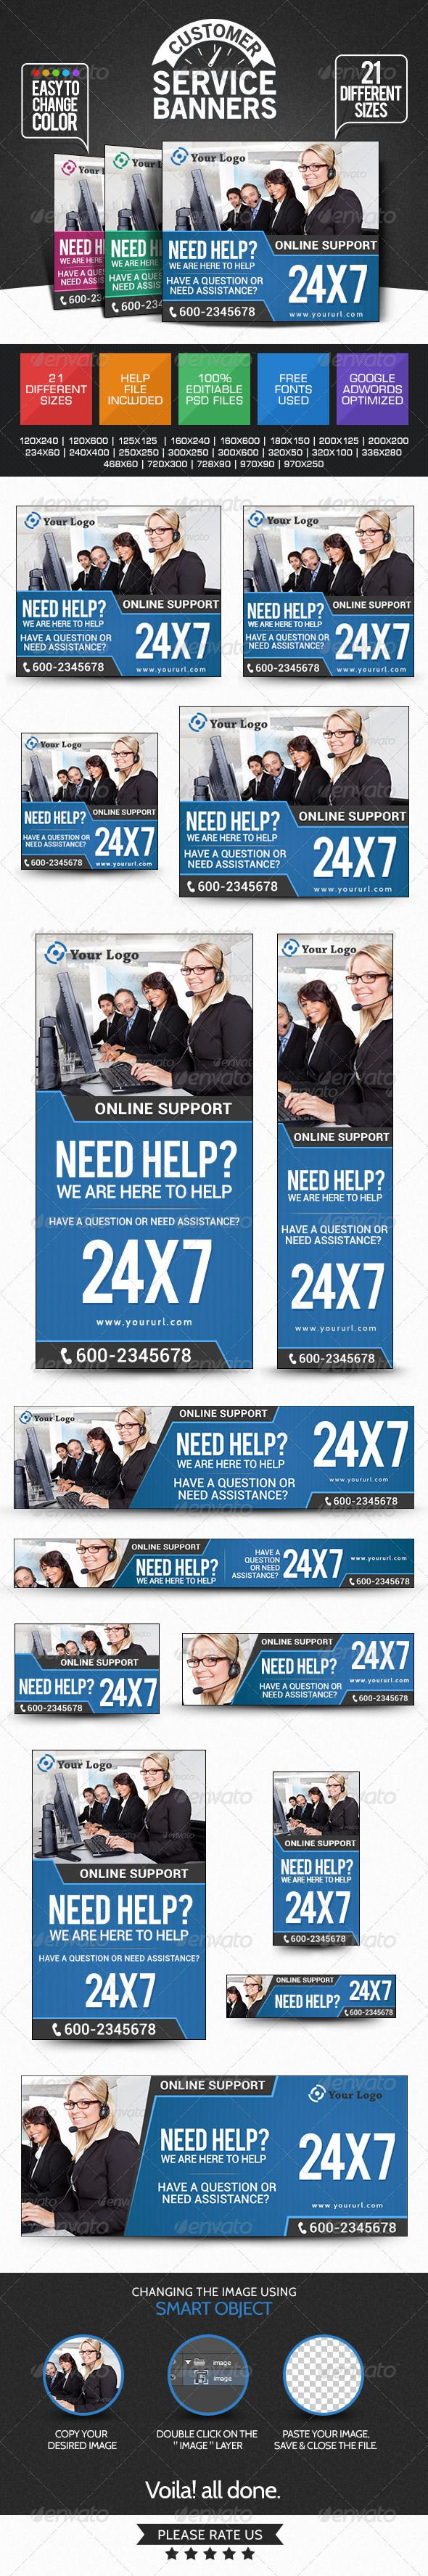 Customer Support Banners